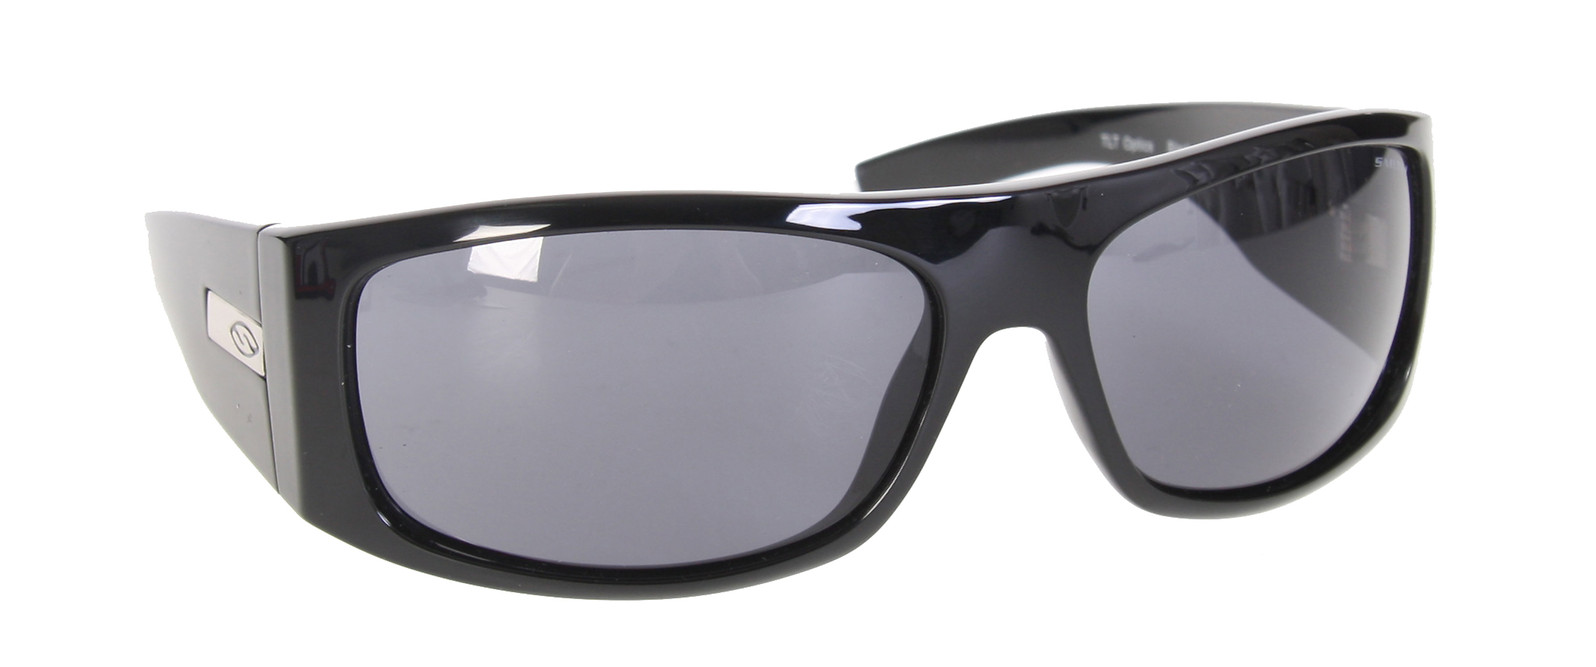 Smith The Don Sunglasses Black/Grey Lens  smith-tehdon-sngls-blkgry-09.jpg